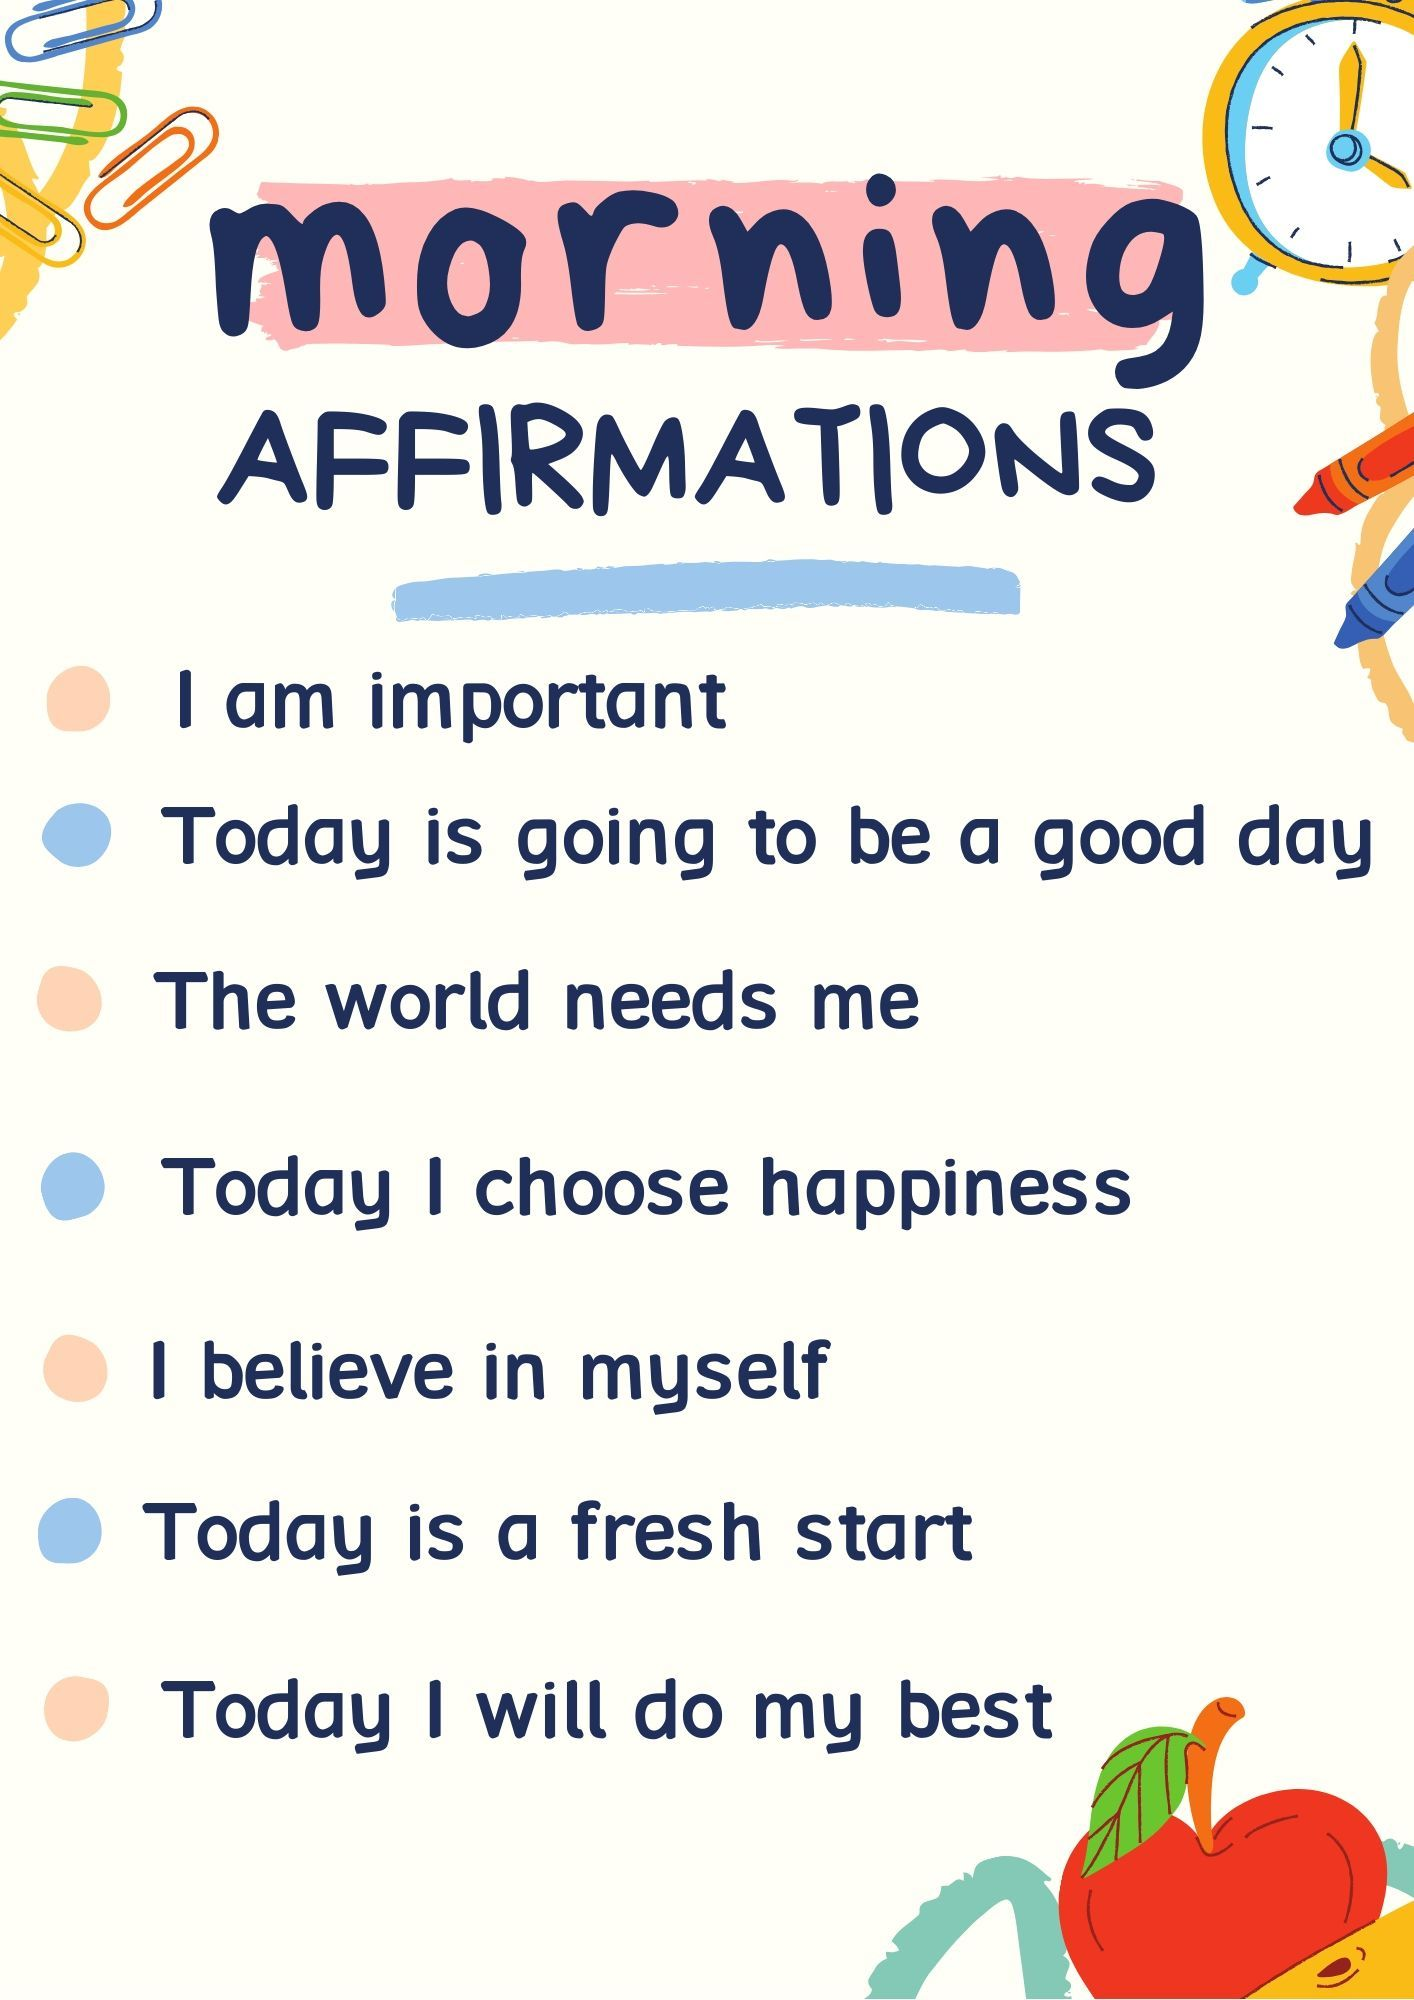 105 Morning Affirmations For A Good Day